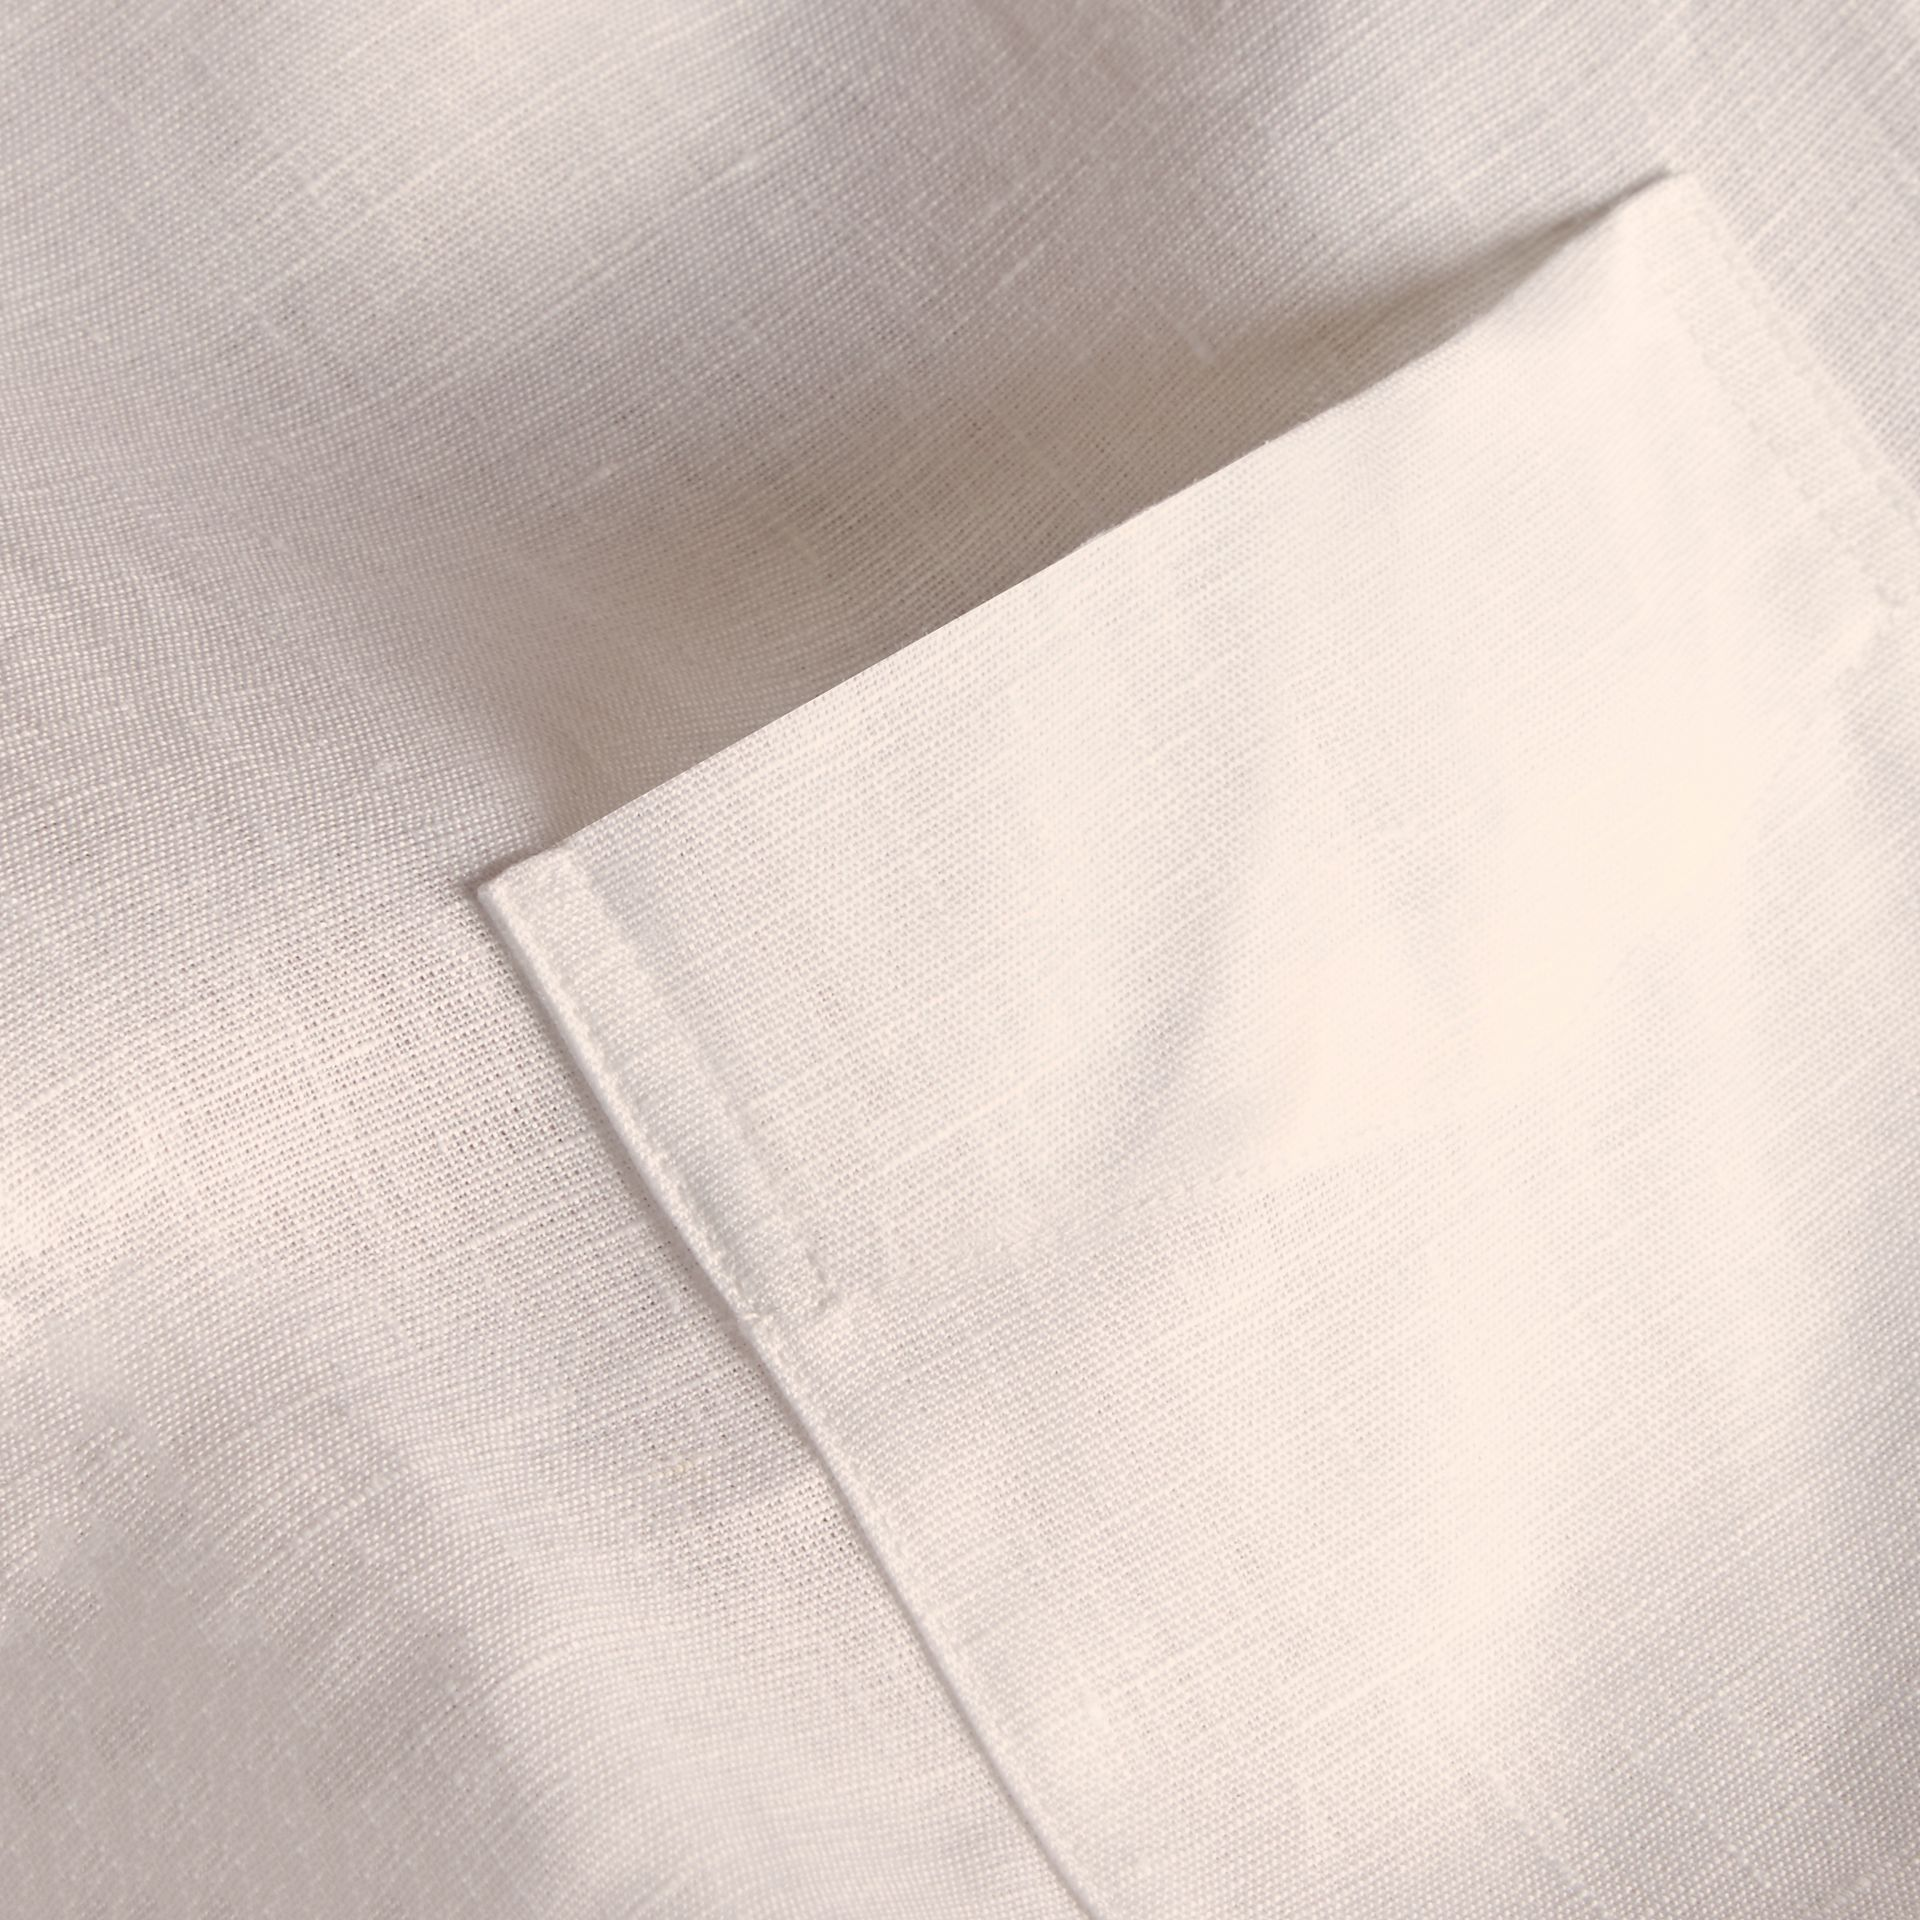 Check Detail Linen Shirt in White - Men | Burberry - gallery image 2